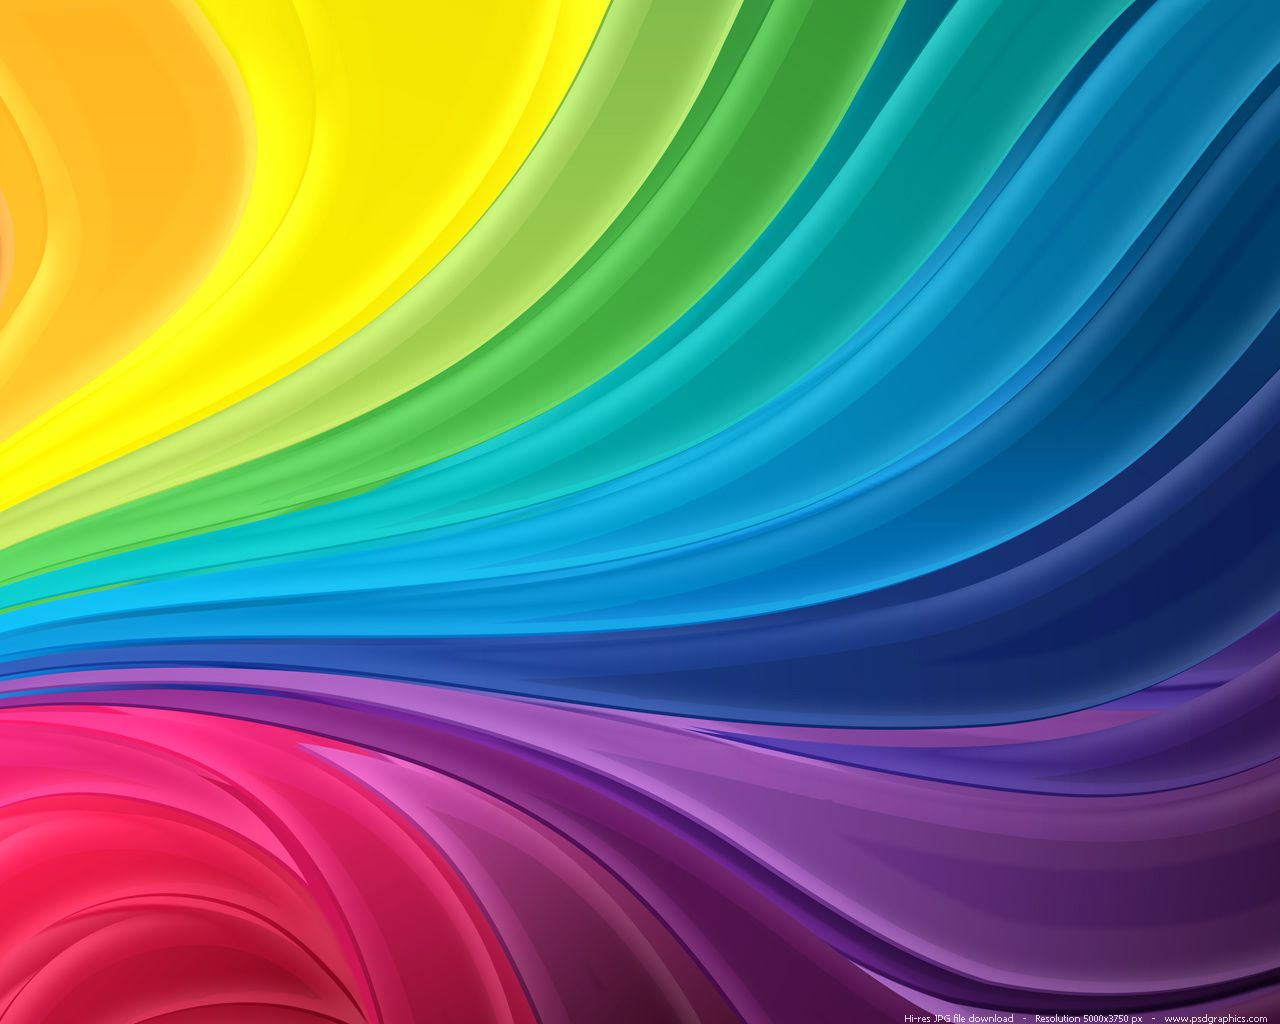 decorating with color incorporating color theory into your dorm